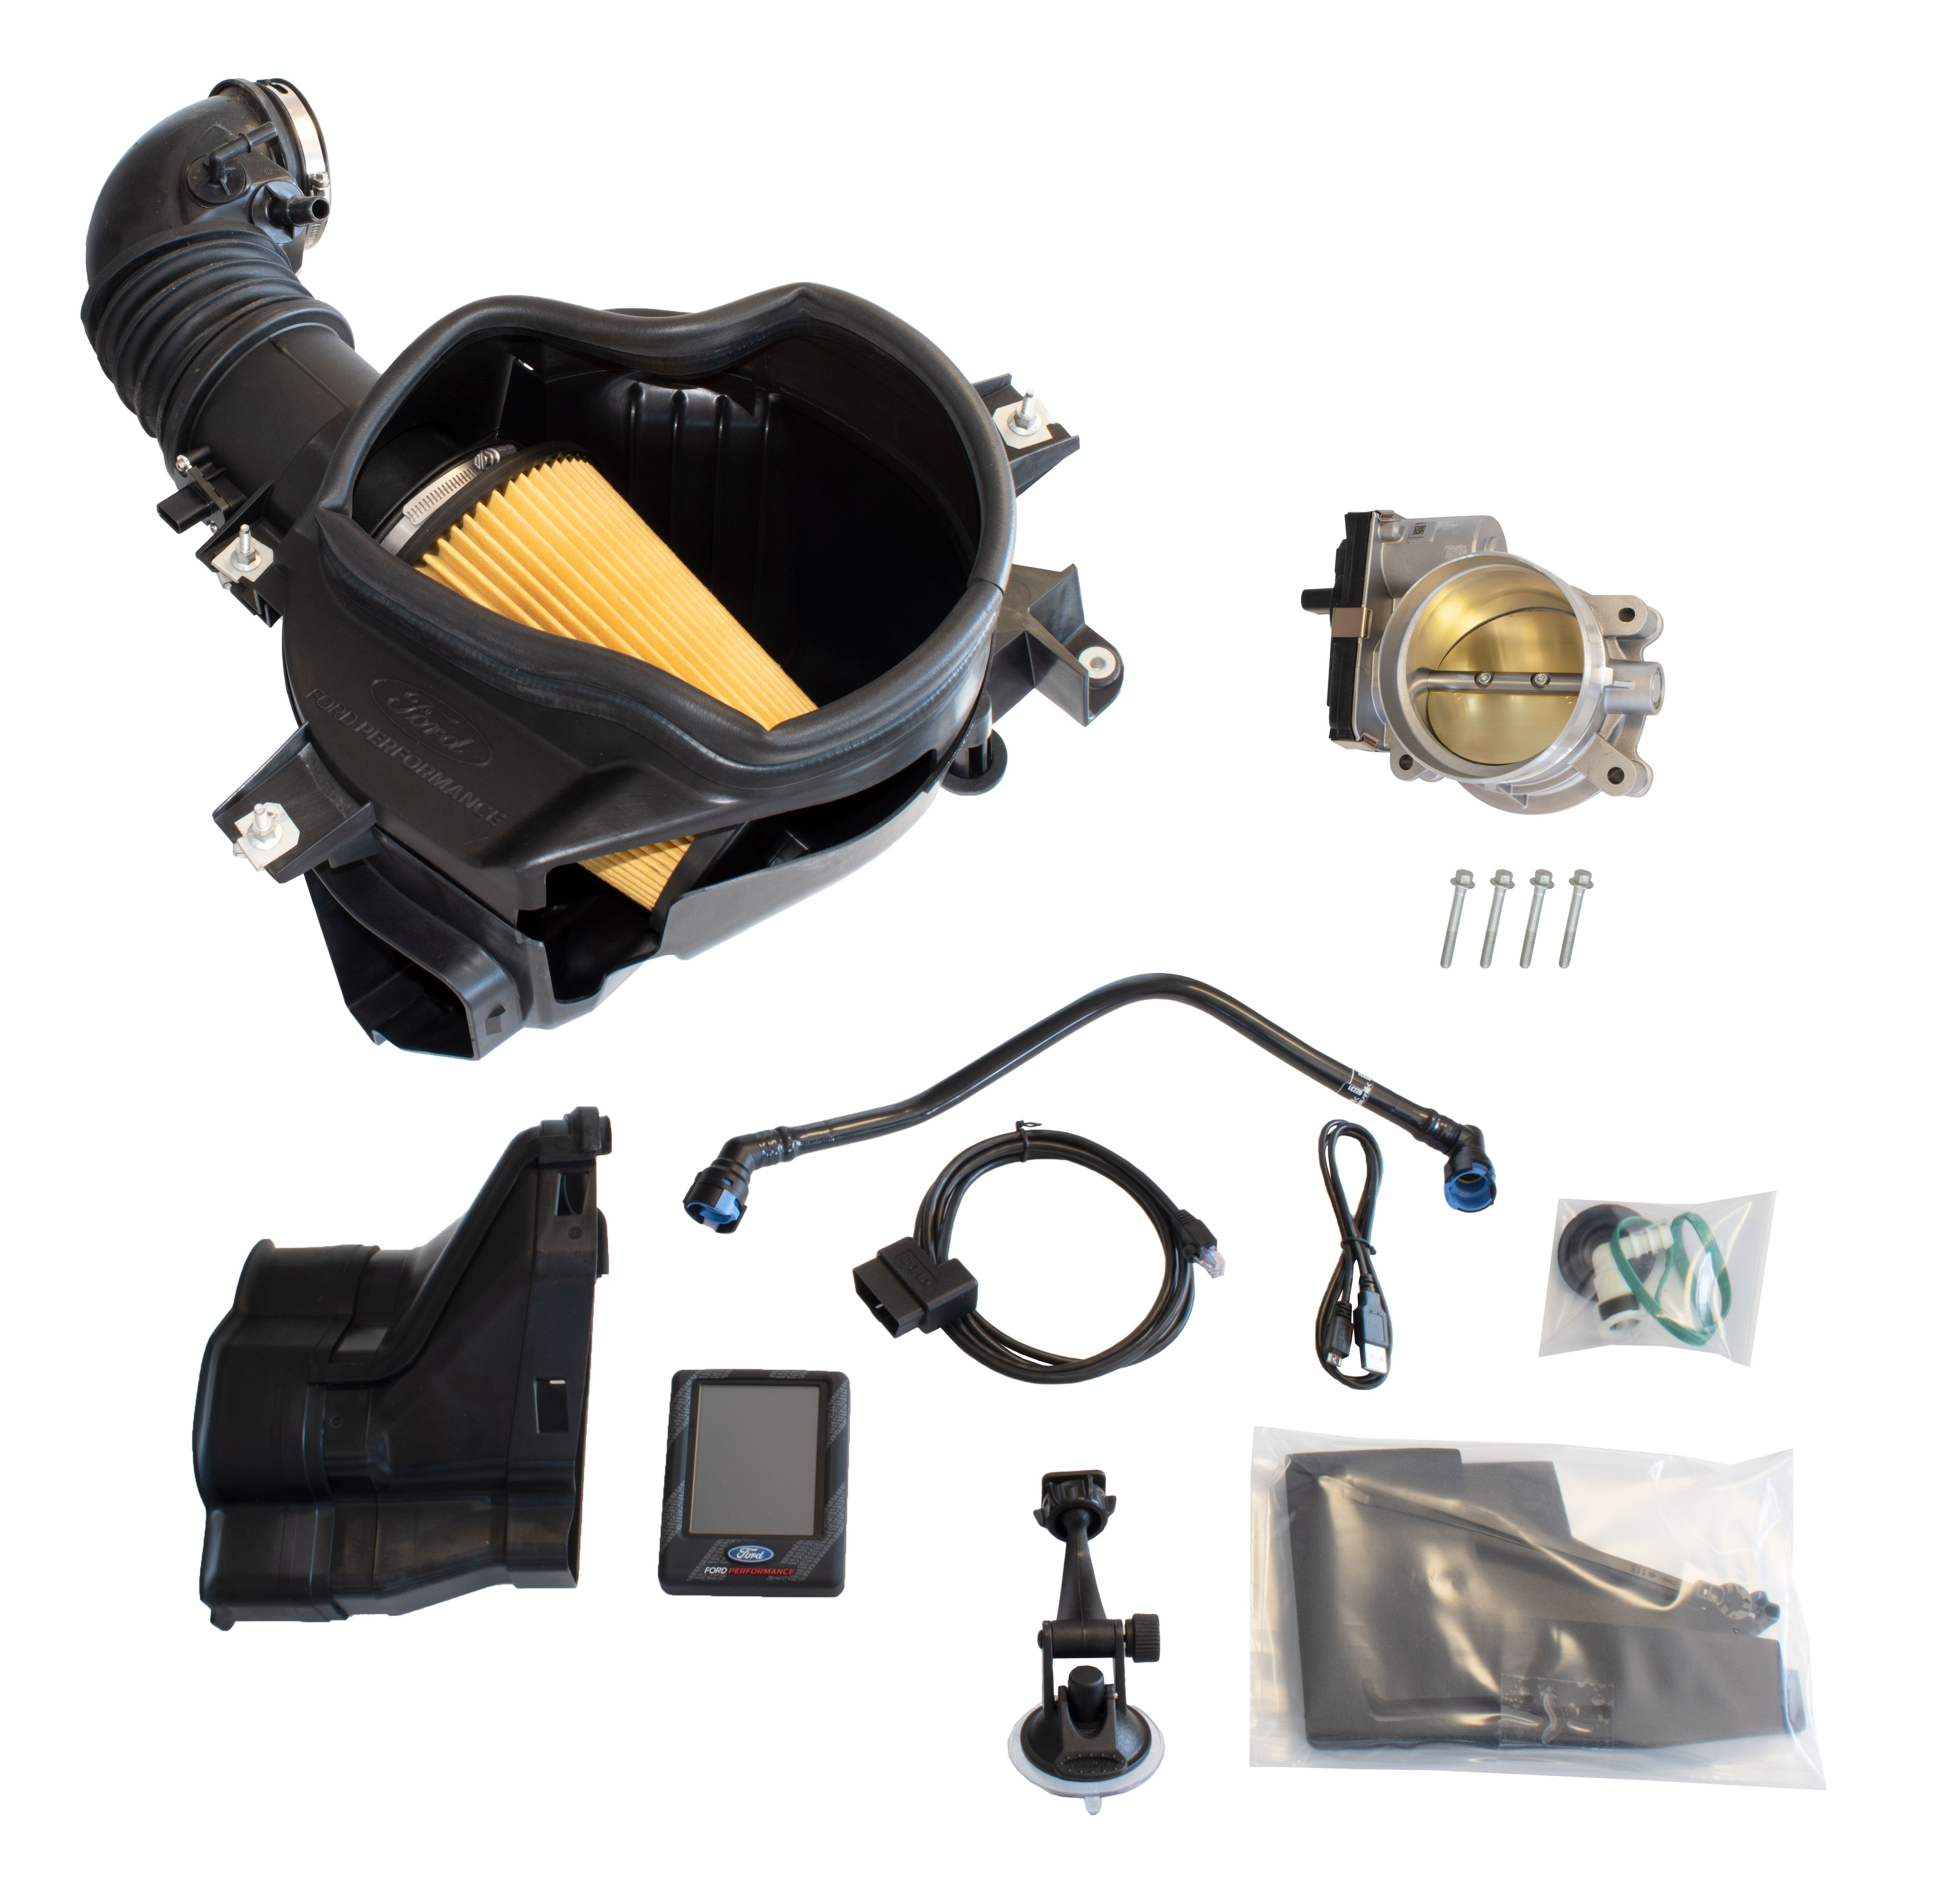 2018-2020 Mustang GT Ford Performance M-9603-M8B Cold Air Intake Throttle Body & Calibration Tool